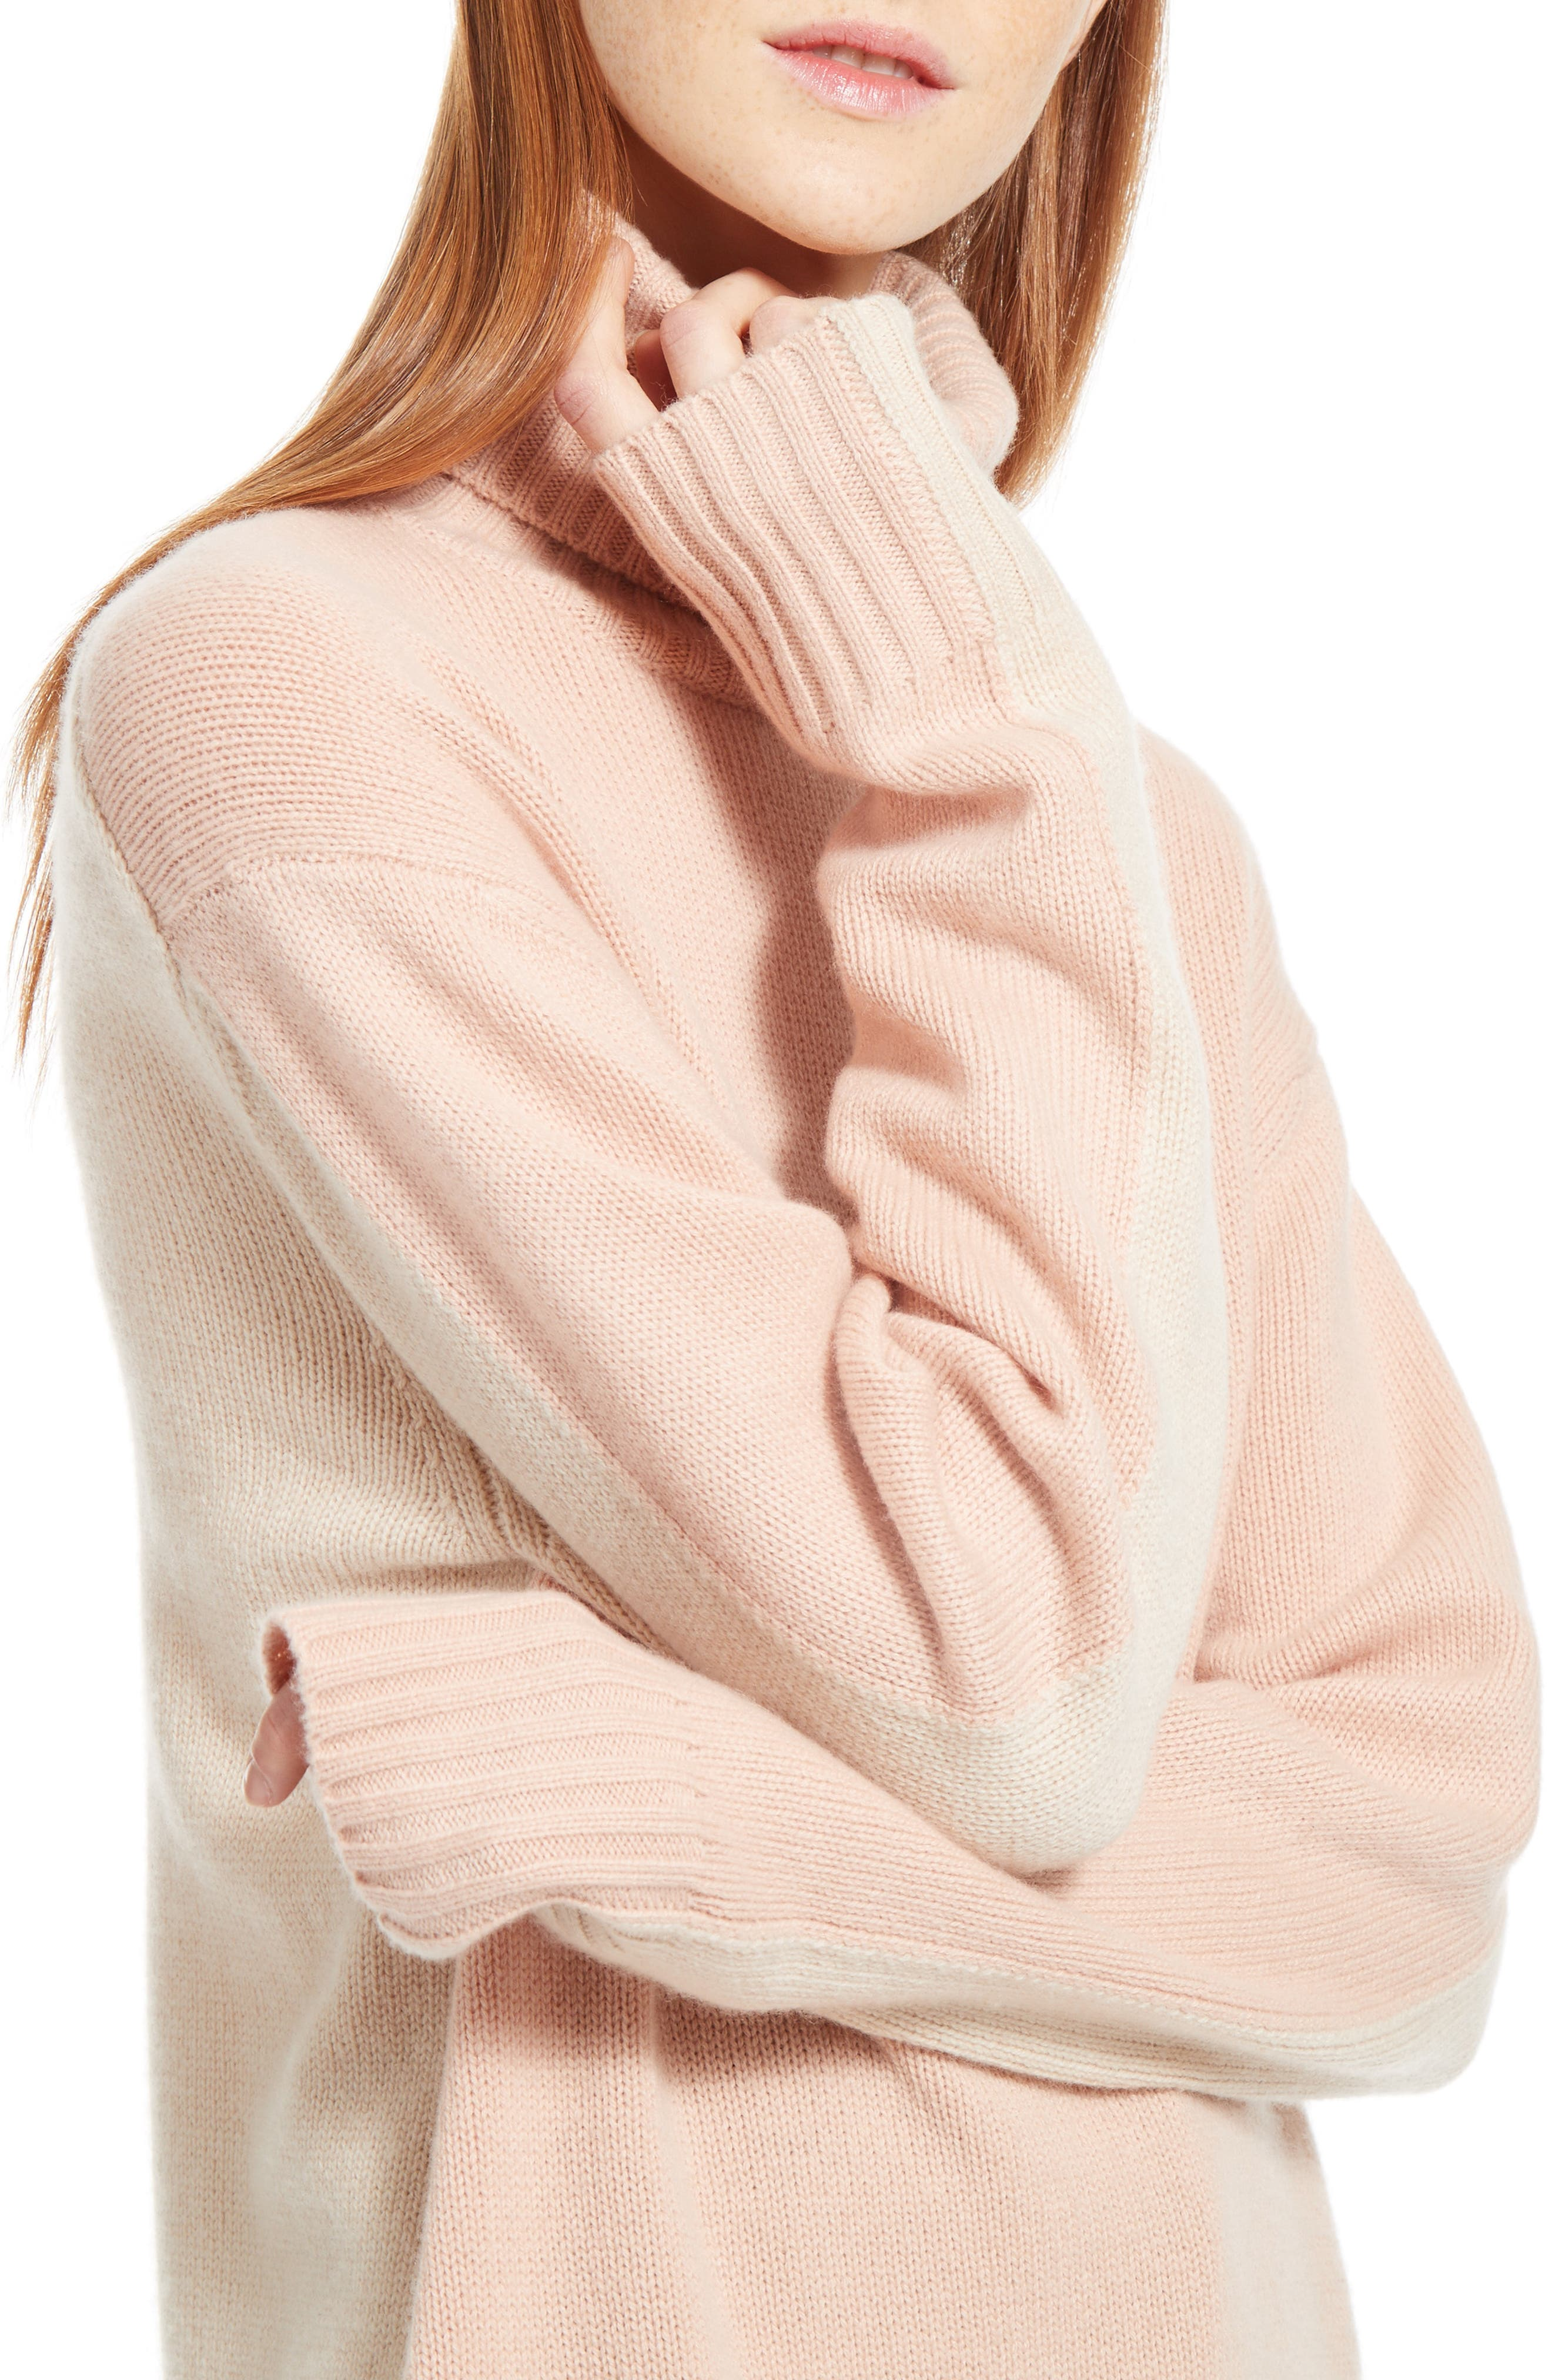 Colorblock Cashmere Turtleneck Sweater,                             Alternate thumbnail 6, color,                             Pink/ Beige